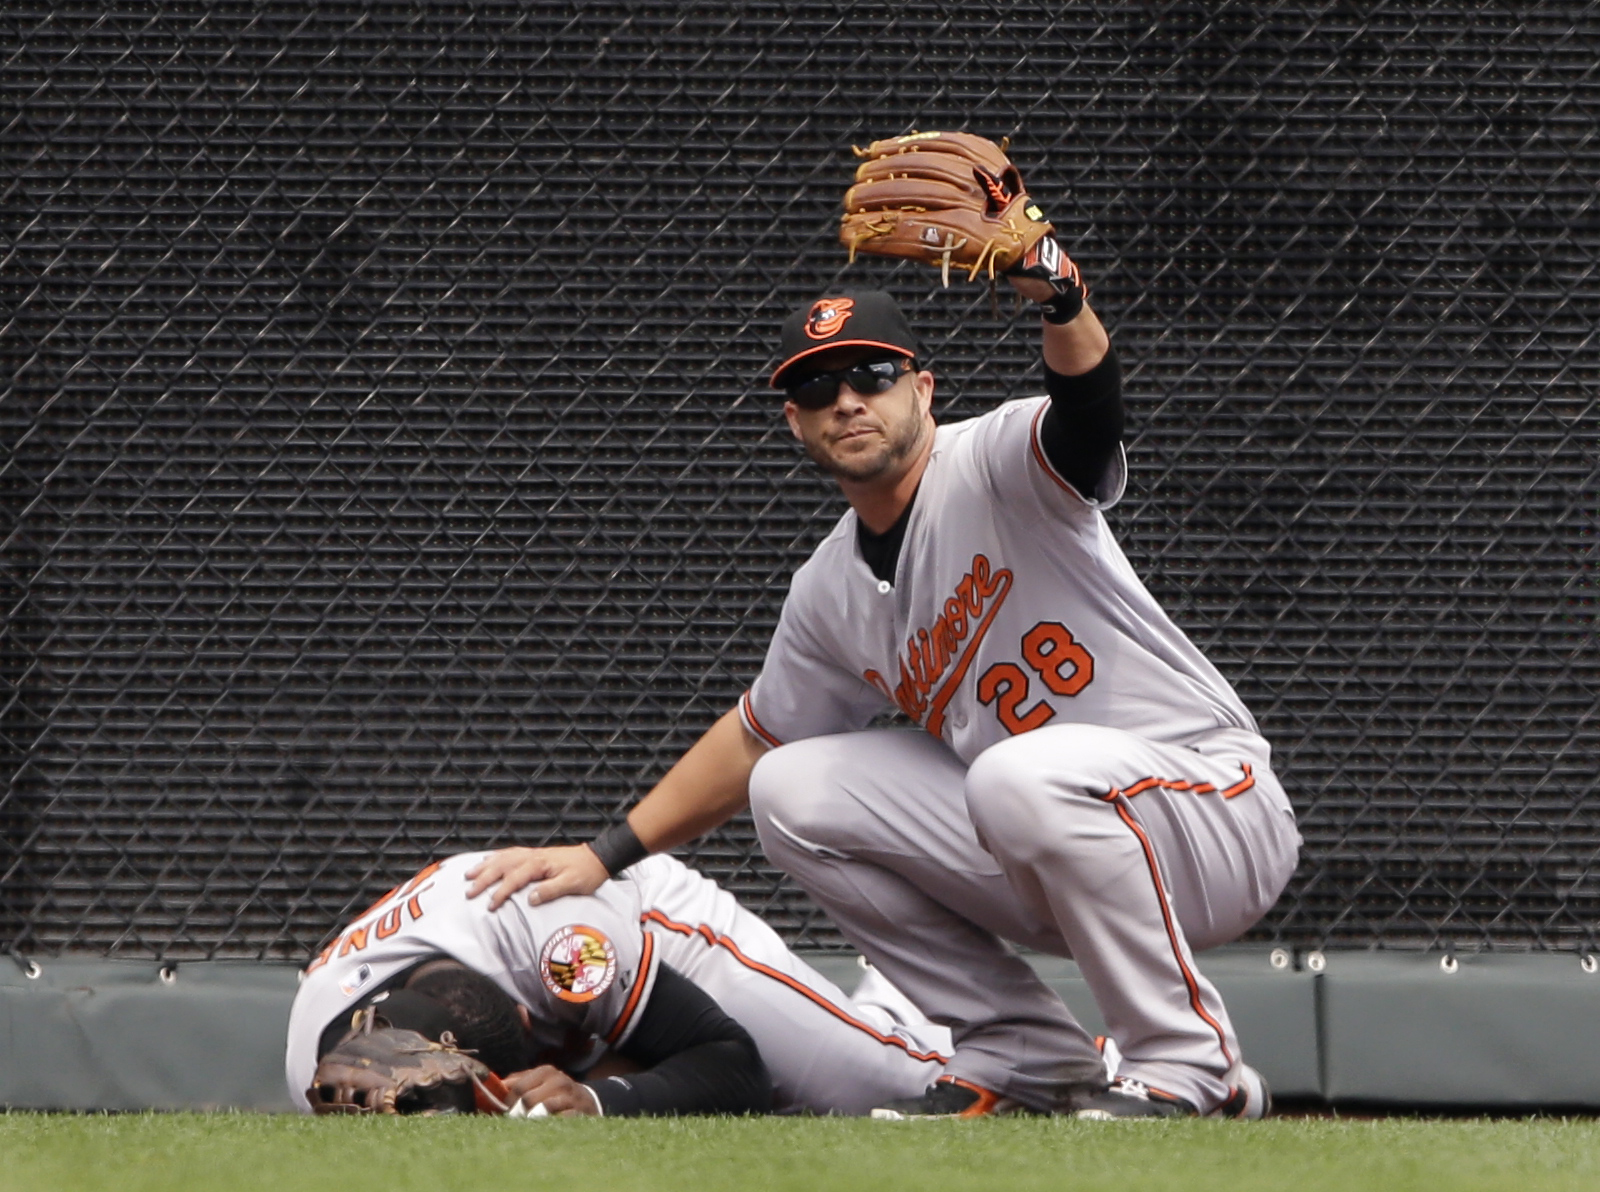 Baltimore Orioles left fielder Steve Pearce (28) calls for help after center fielder Adam Jones, left, hit the wall while chasing a fly ball during the first inning of a baseball game against the Kansas City Royals at Kauffman Stadium in Kansas City, Mo.,